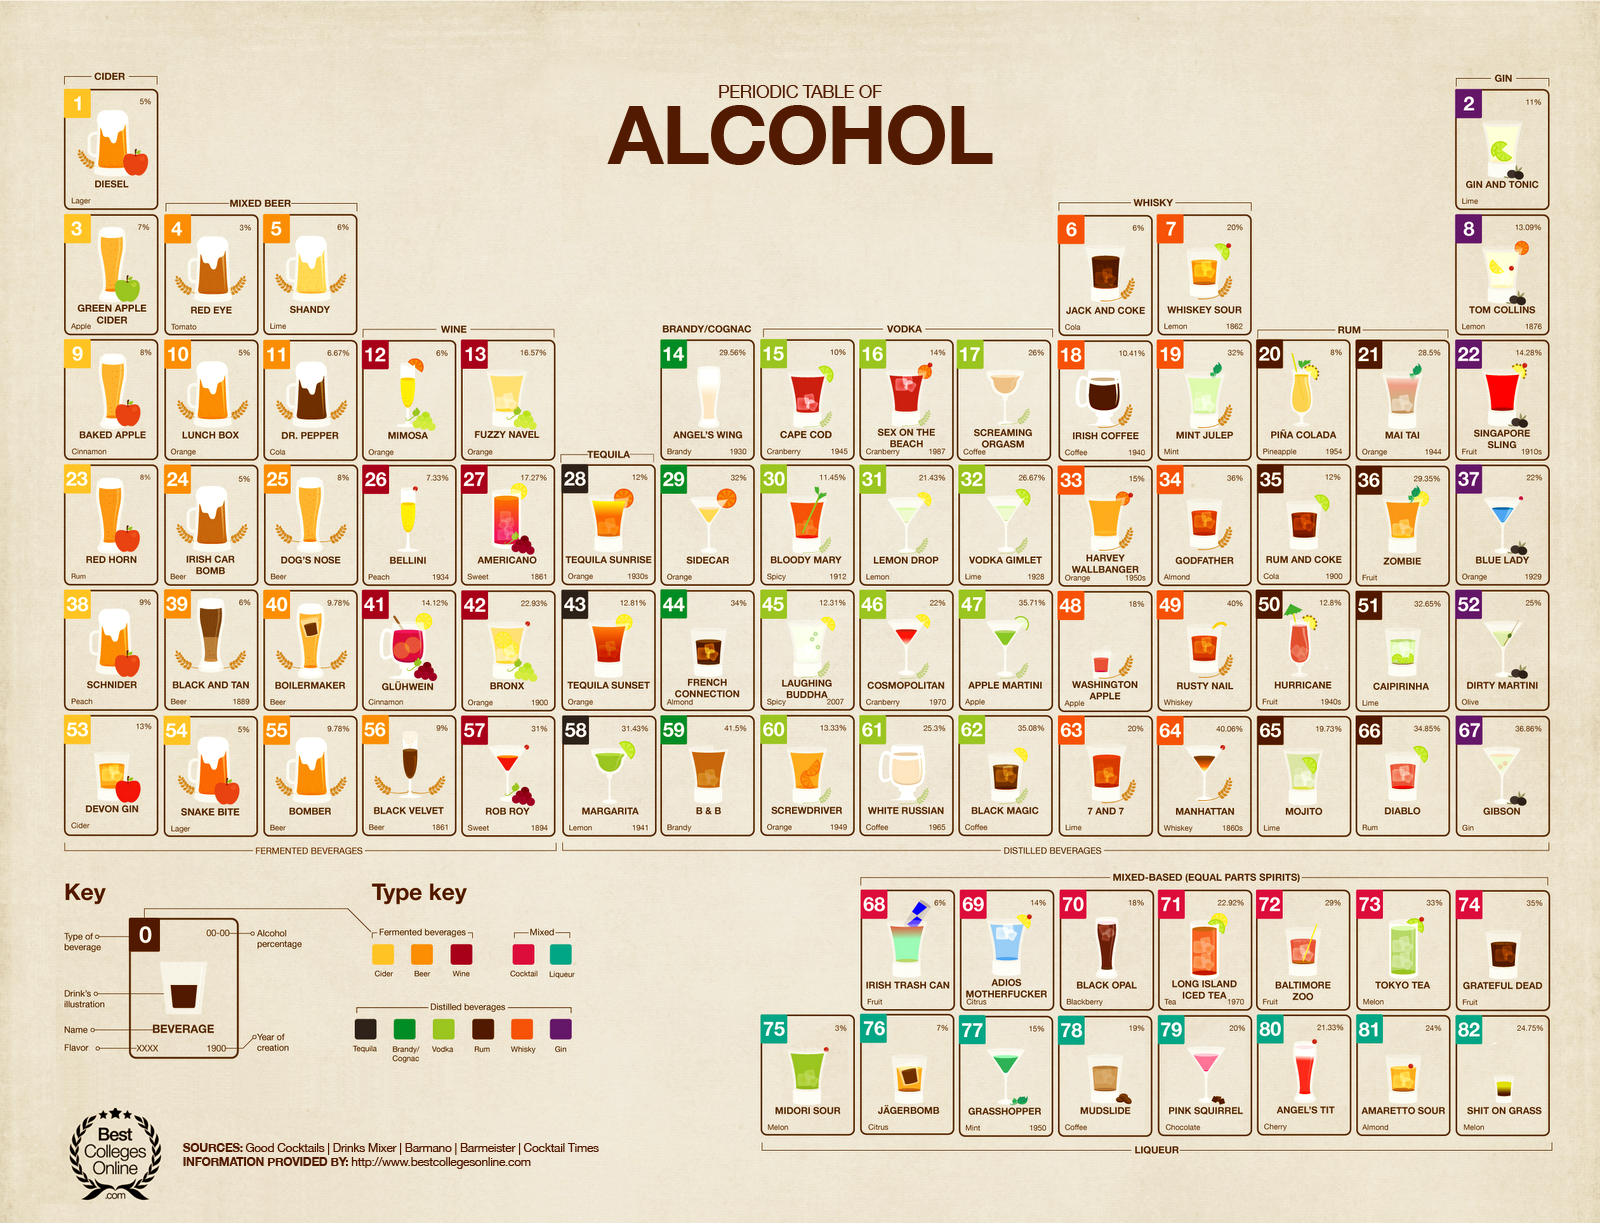 A periodic table for boozers infographic huffpost 2013 09 13 periodictableofalcohol52125c3245a7d1g gamestrikefo Image collections